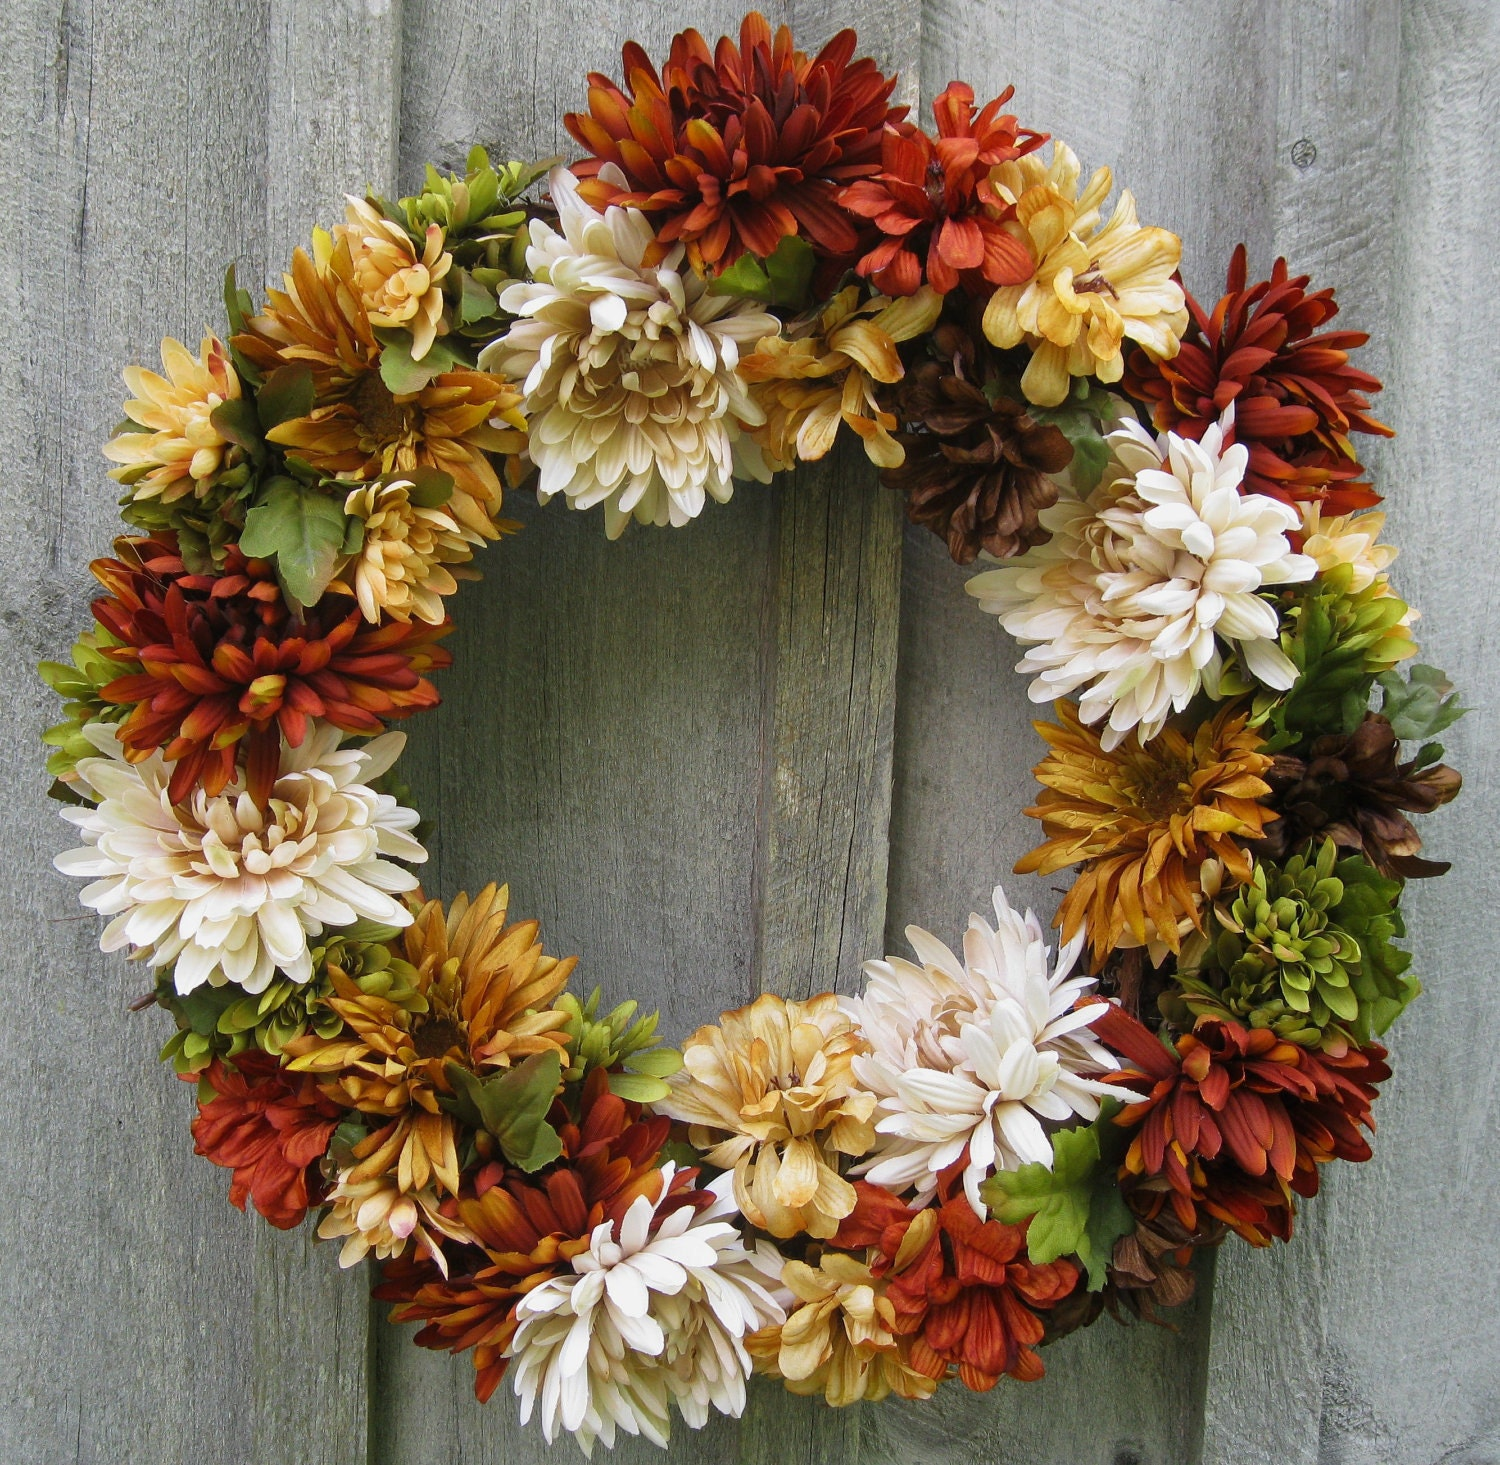 Sale Fall Wreaths Chrysanthemum Autumn Floral Wreath